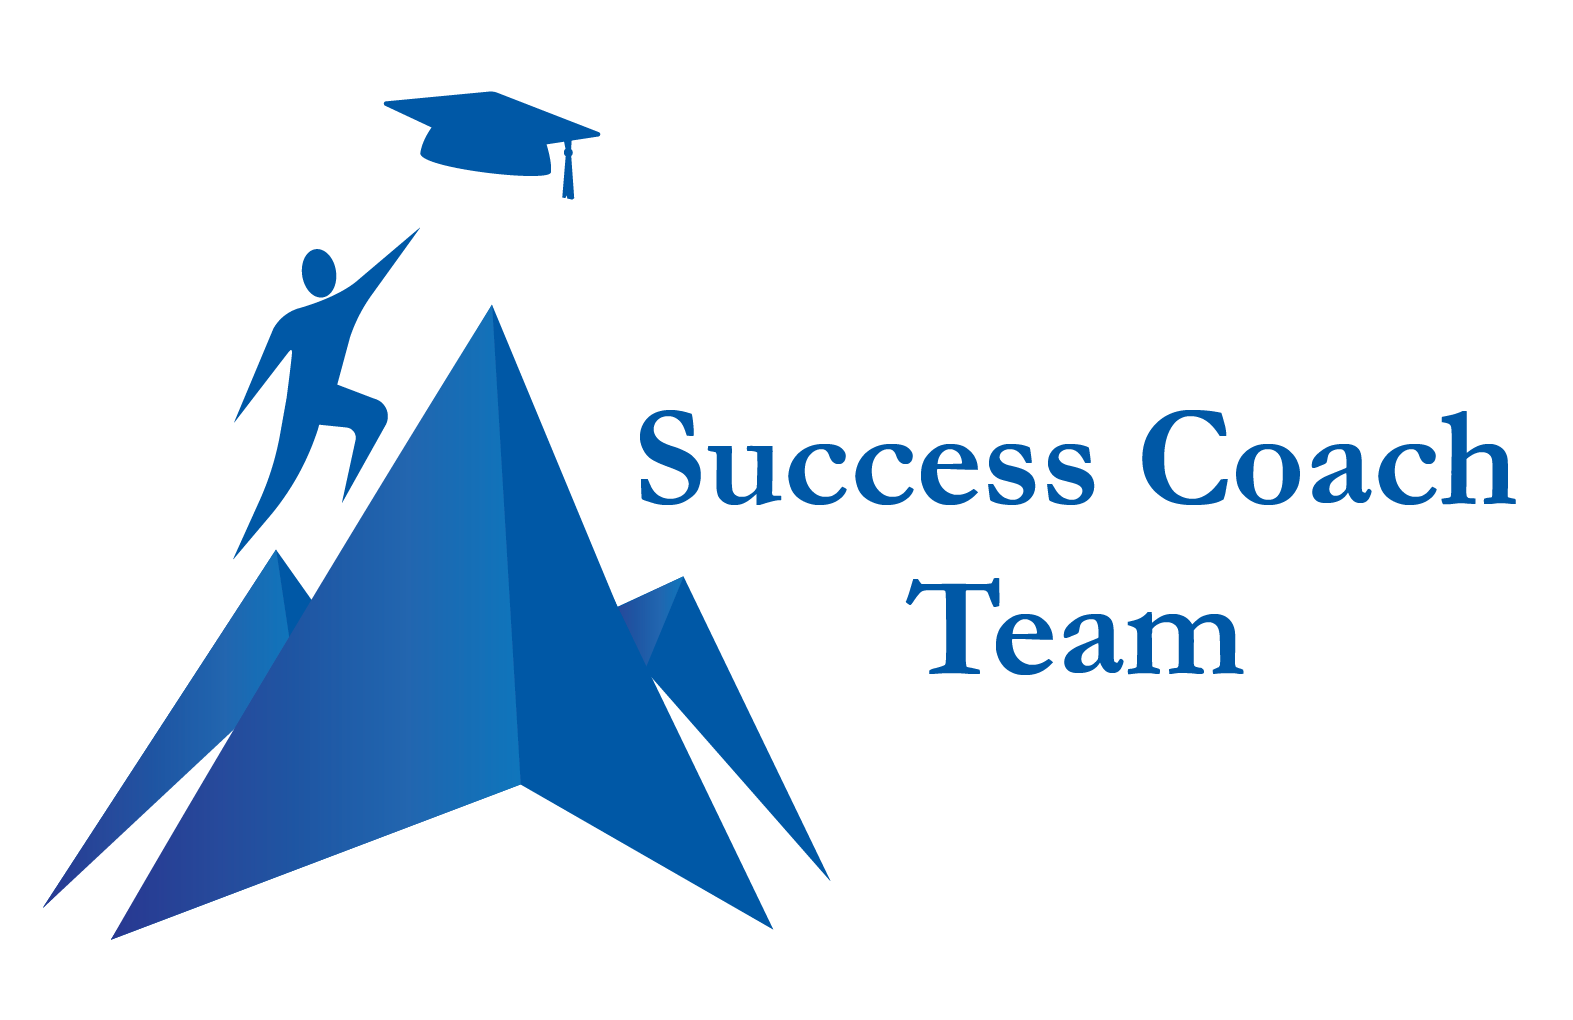 A Logo with A student climbing a mountain and reaching for a graduation cap.